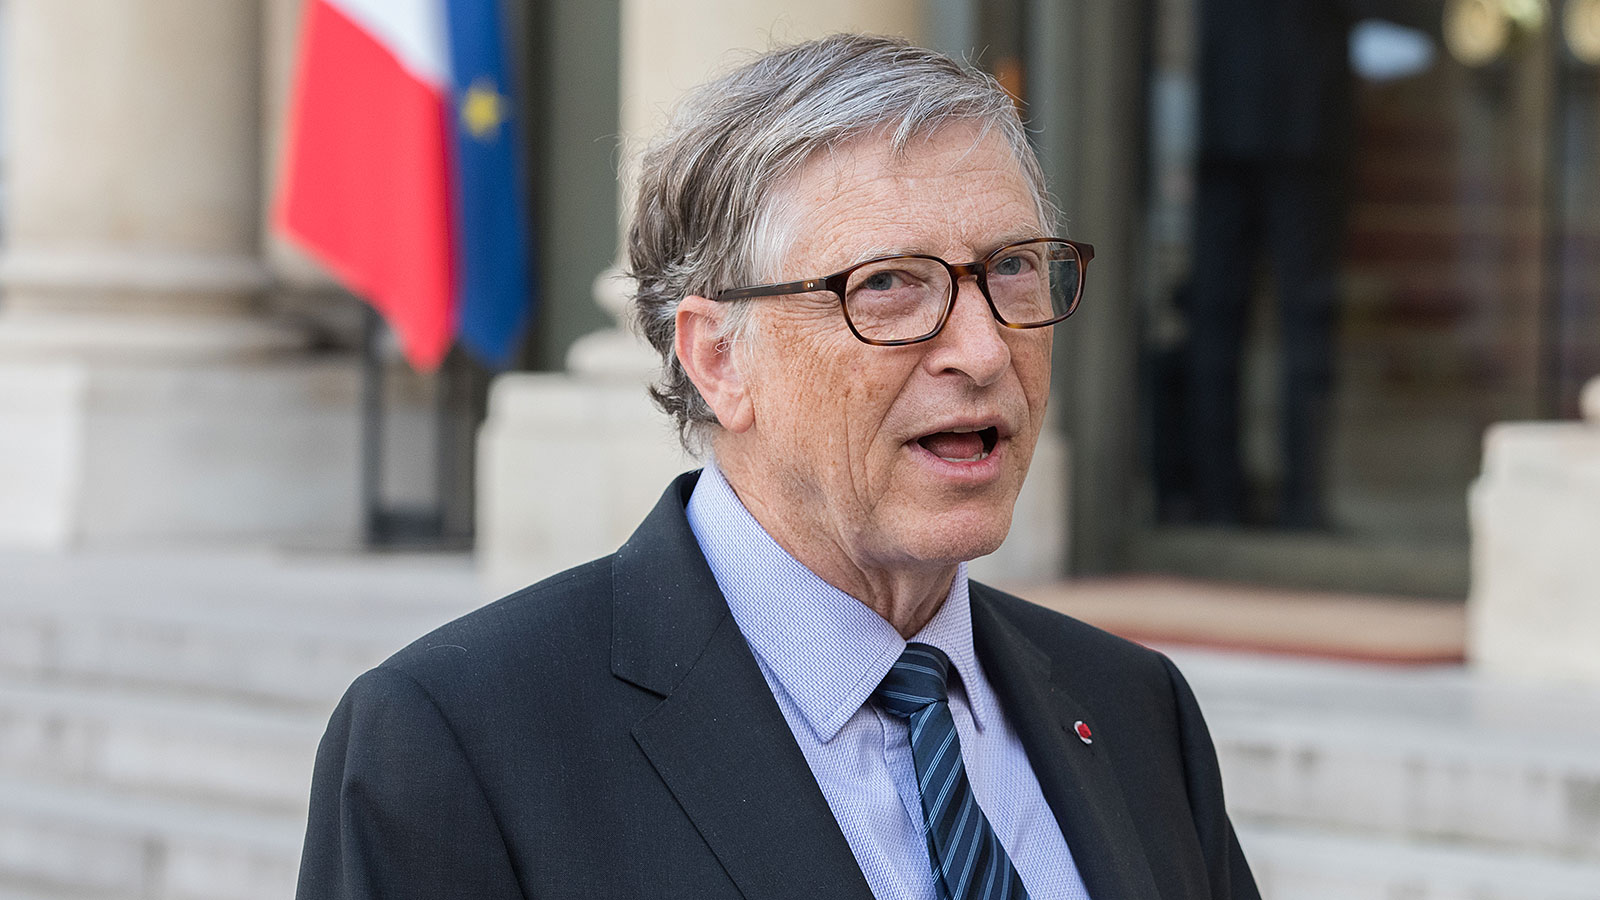 Bill Gates says these are the 3 drastic steps we must take to fight Coronavirus